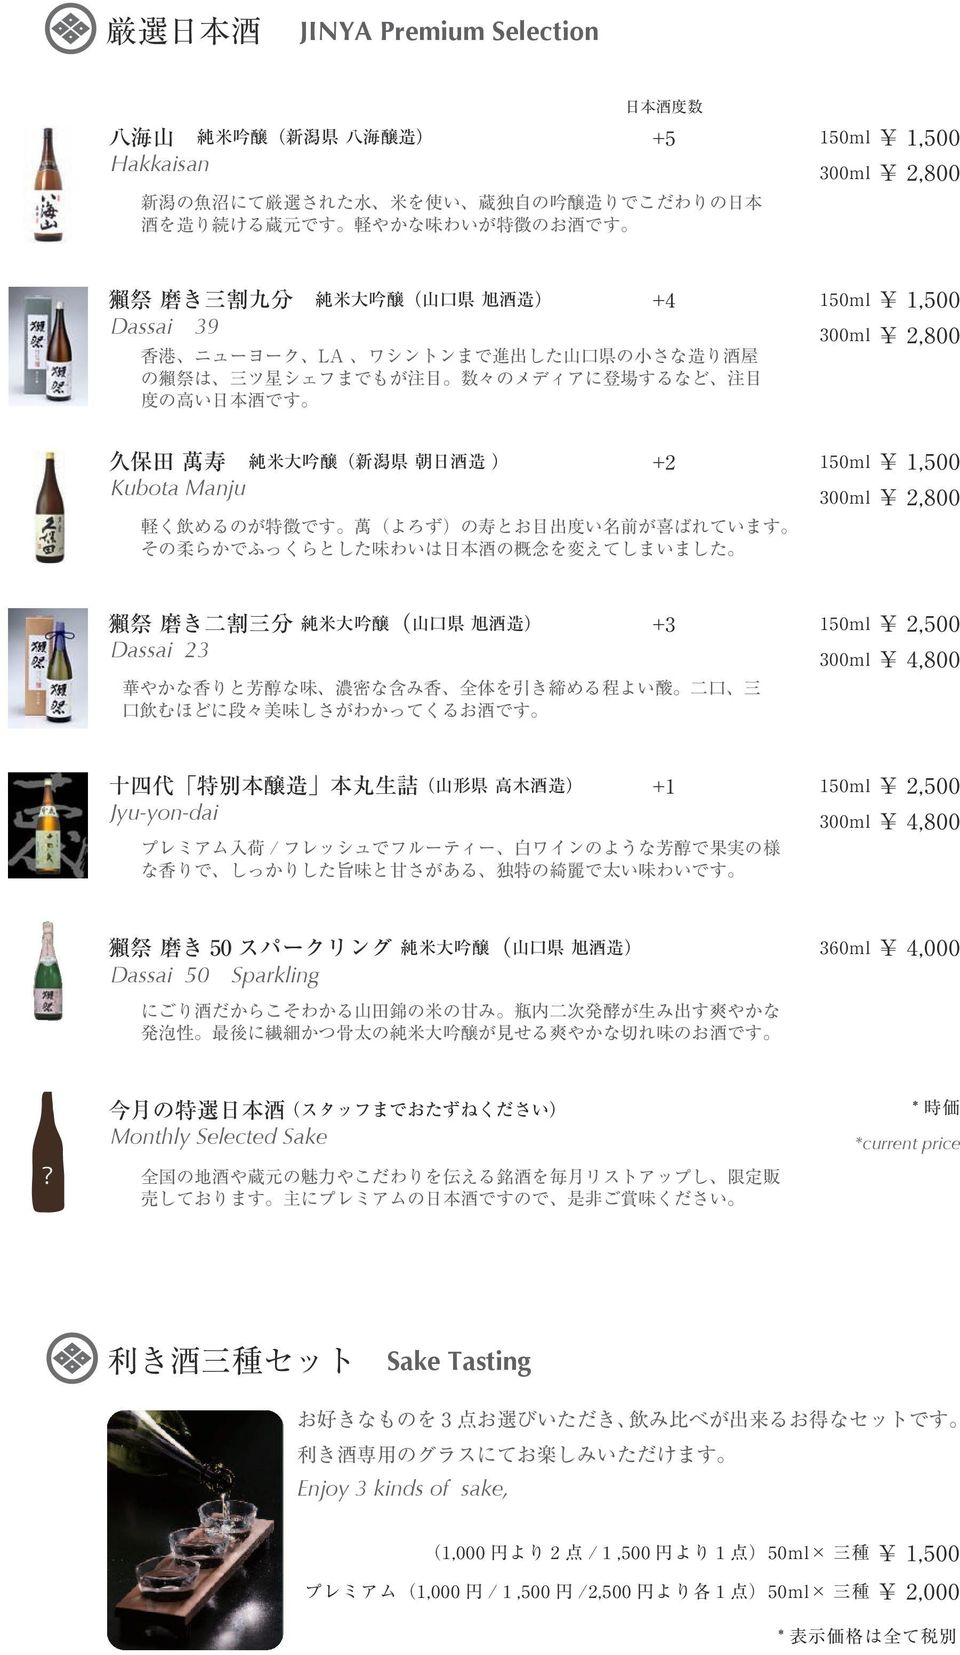 Dassai 50 Sparkling Monthly Selected Sake